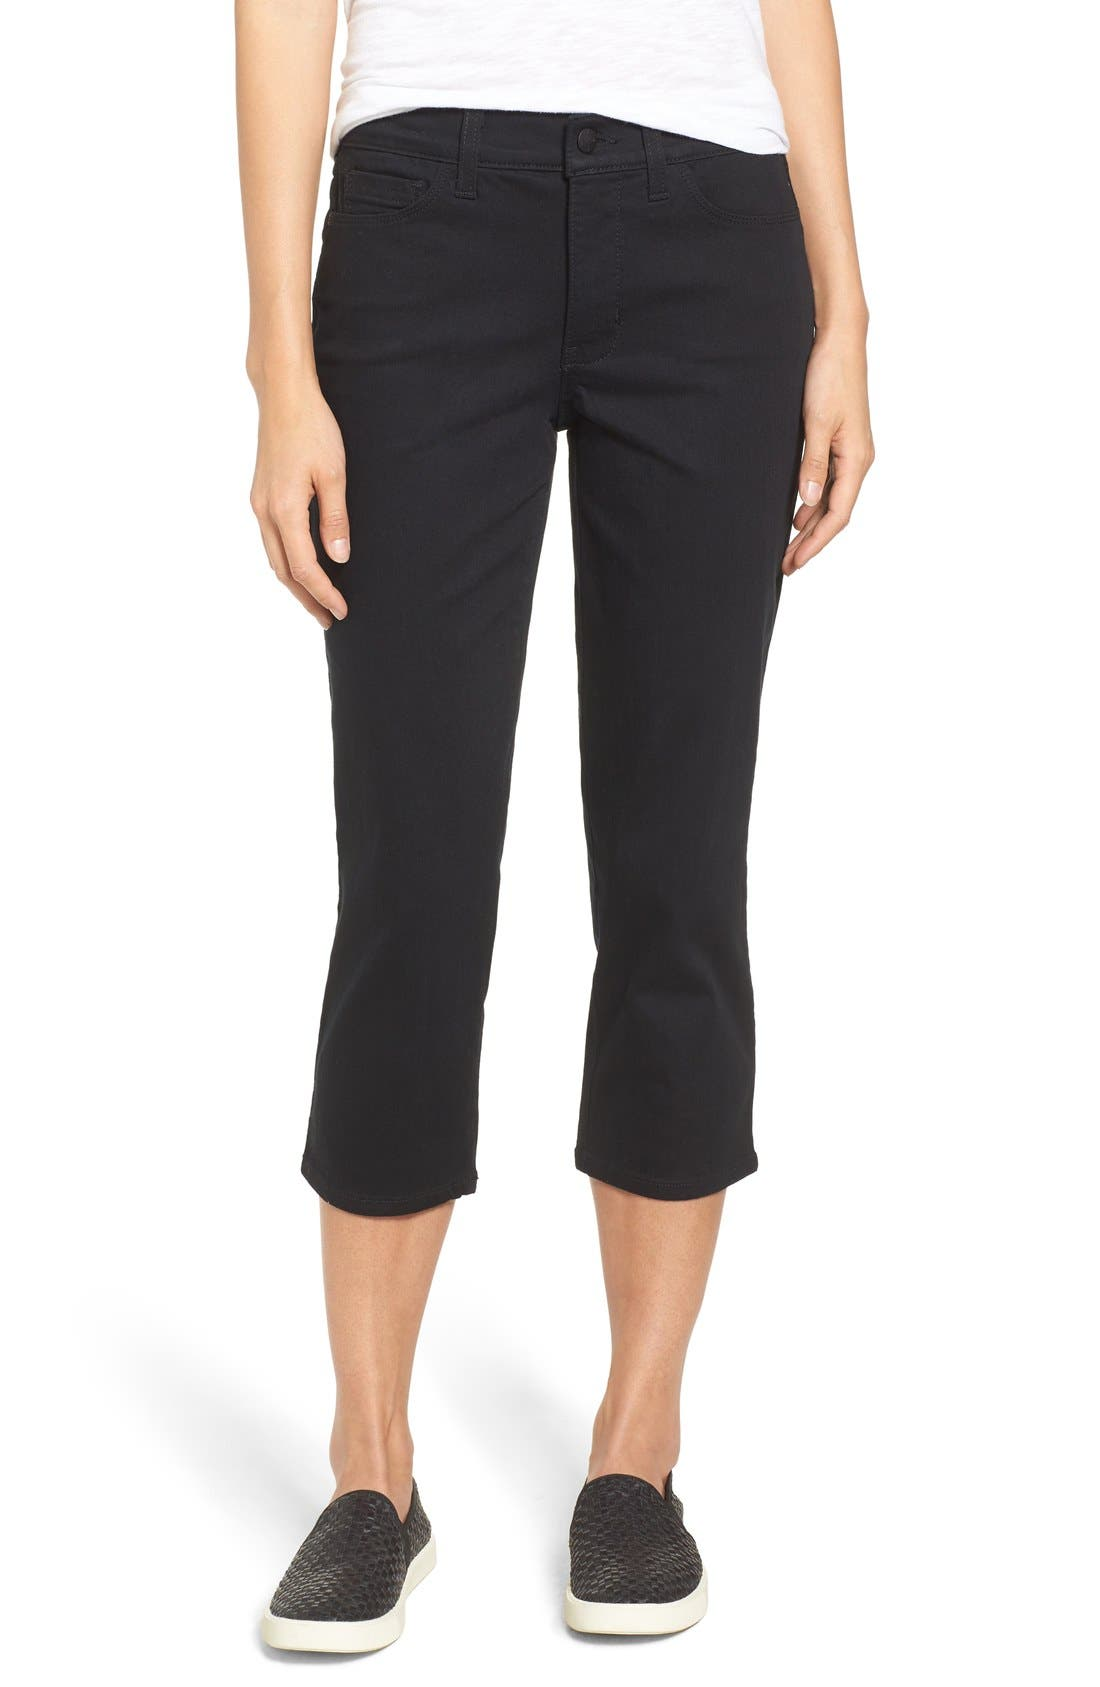 NYDJ Alina Stretch Capri Pants (Regular & Petite)